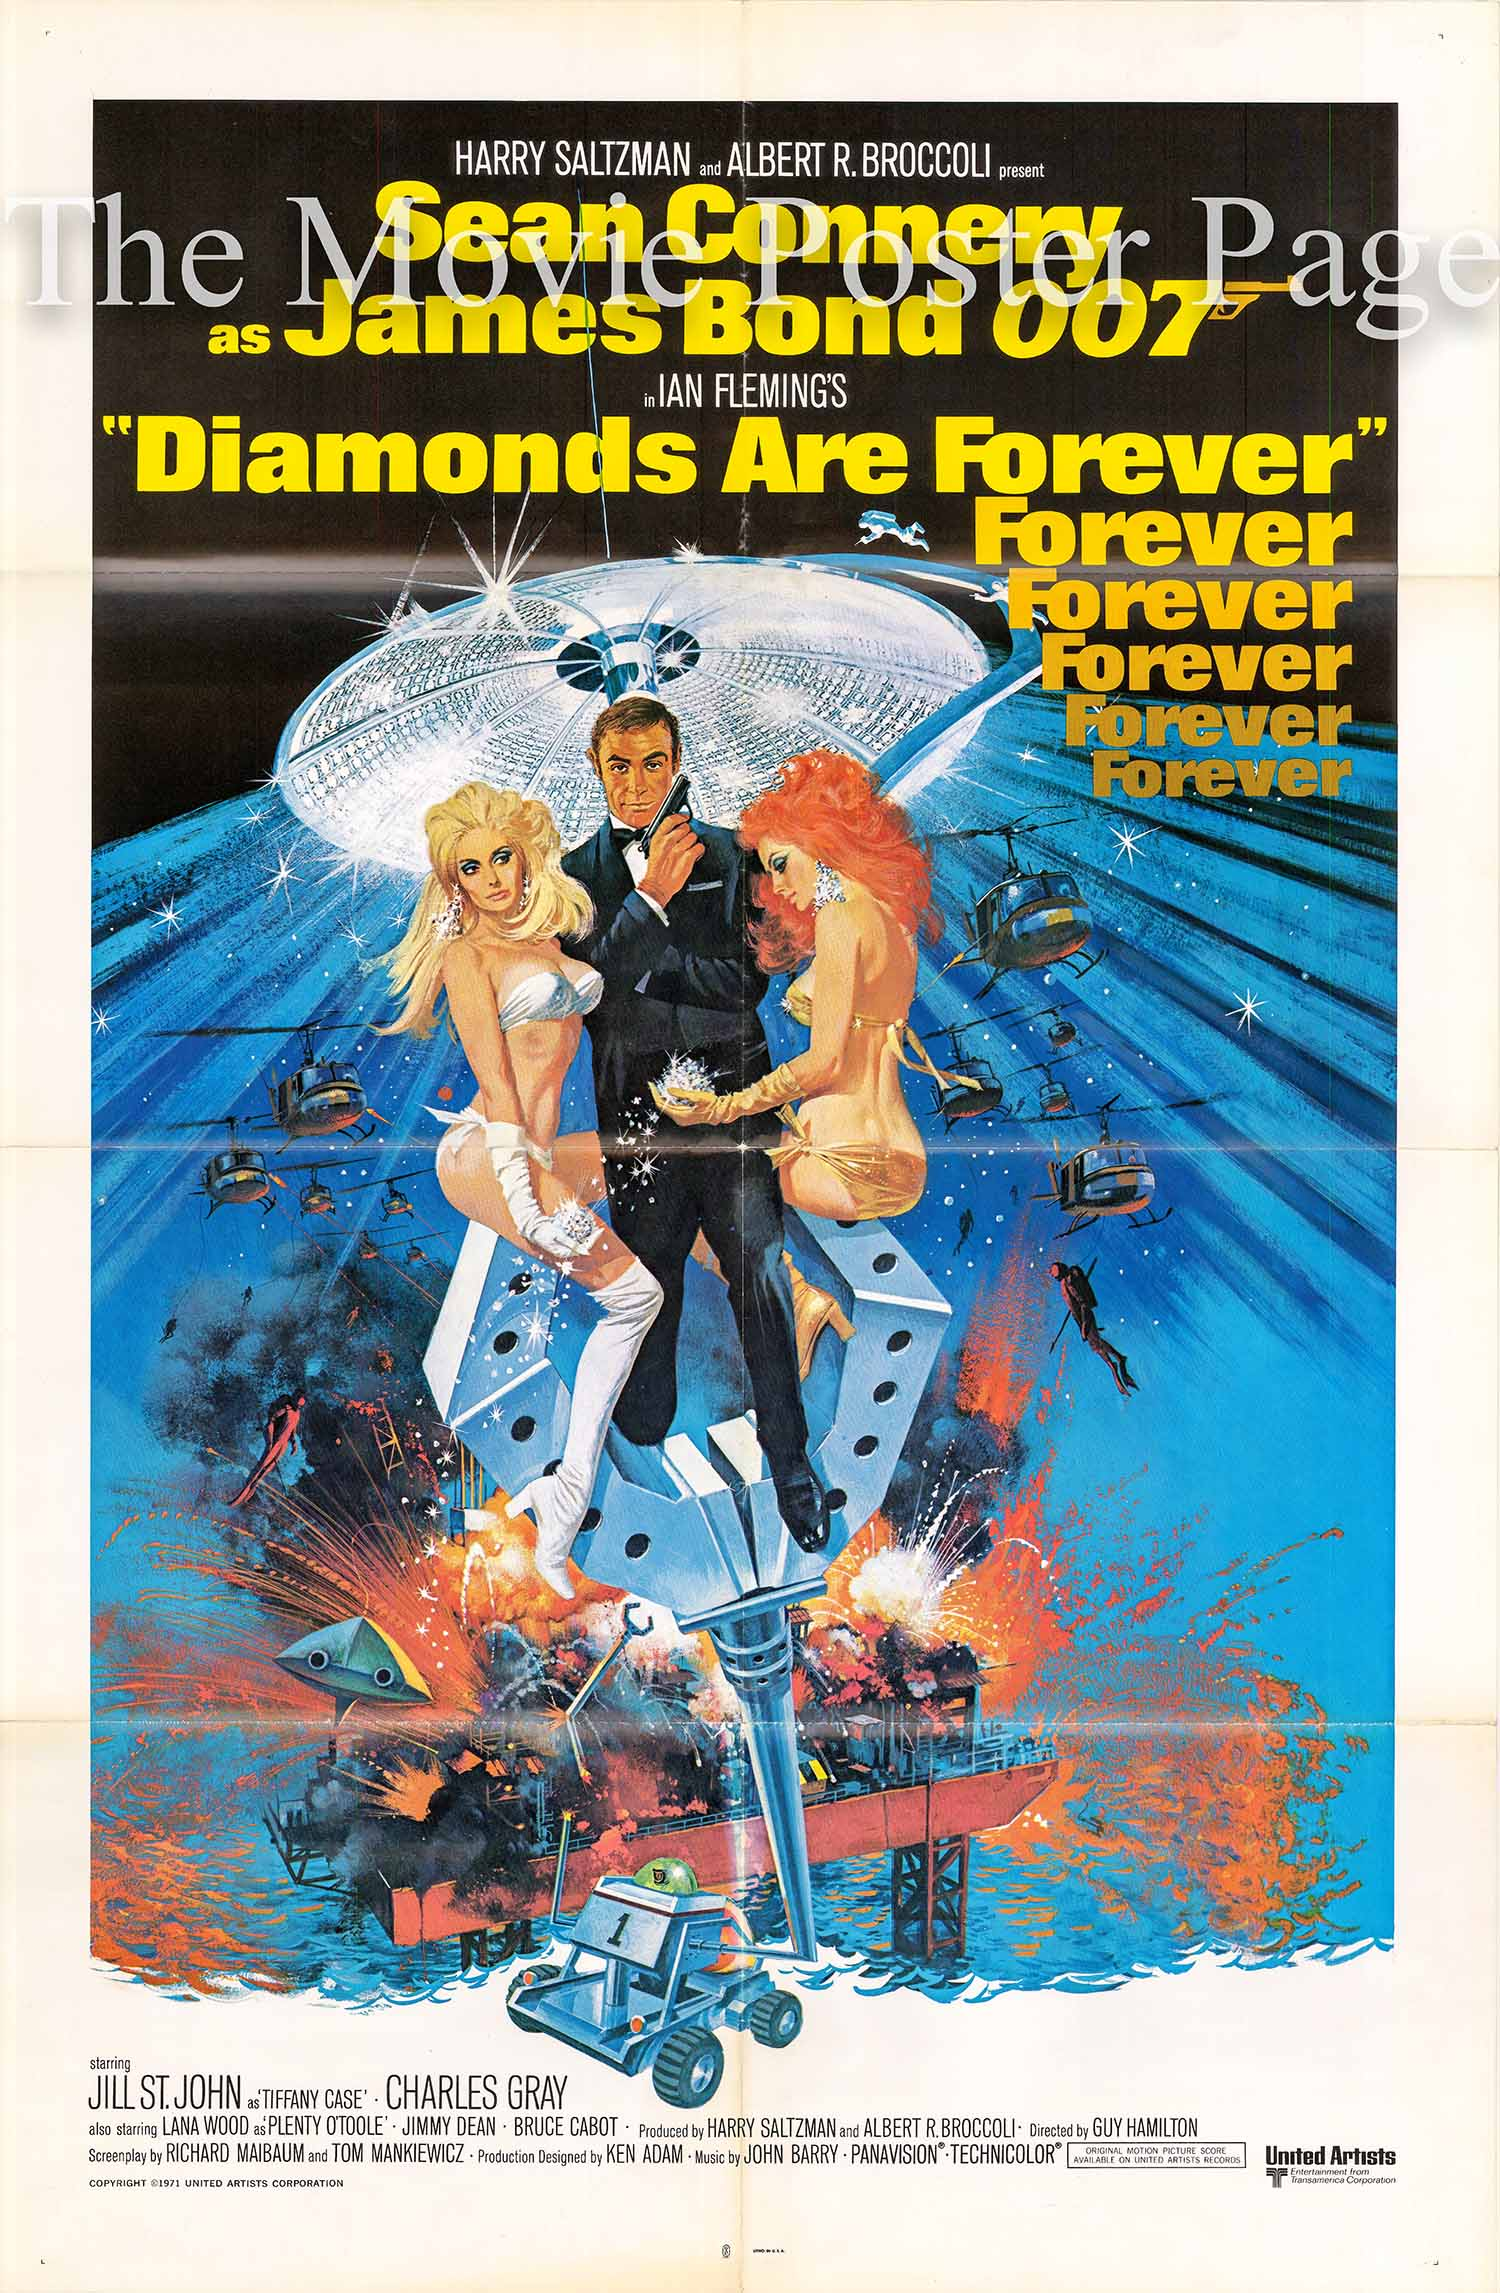 Pictured is a US international one-sheet promotional poster for a 1980s rerelease of the 1971 Guy Hamilton film Diamonds Are Forever starring Sean Connery.